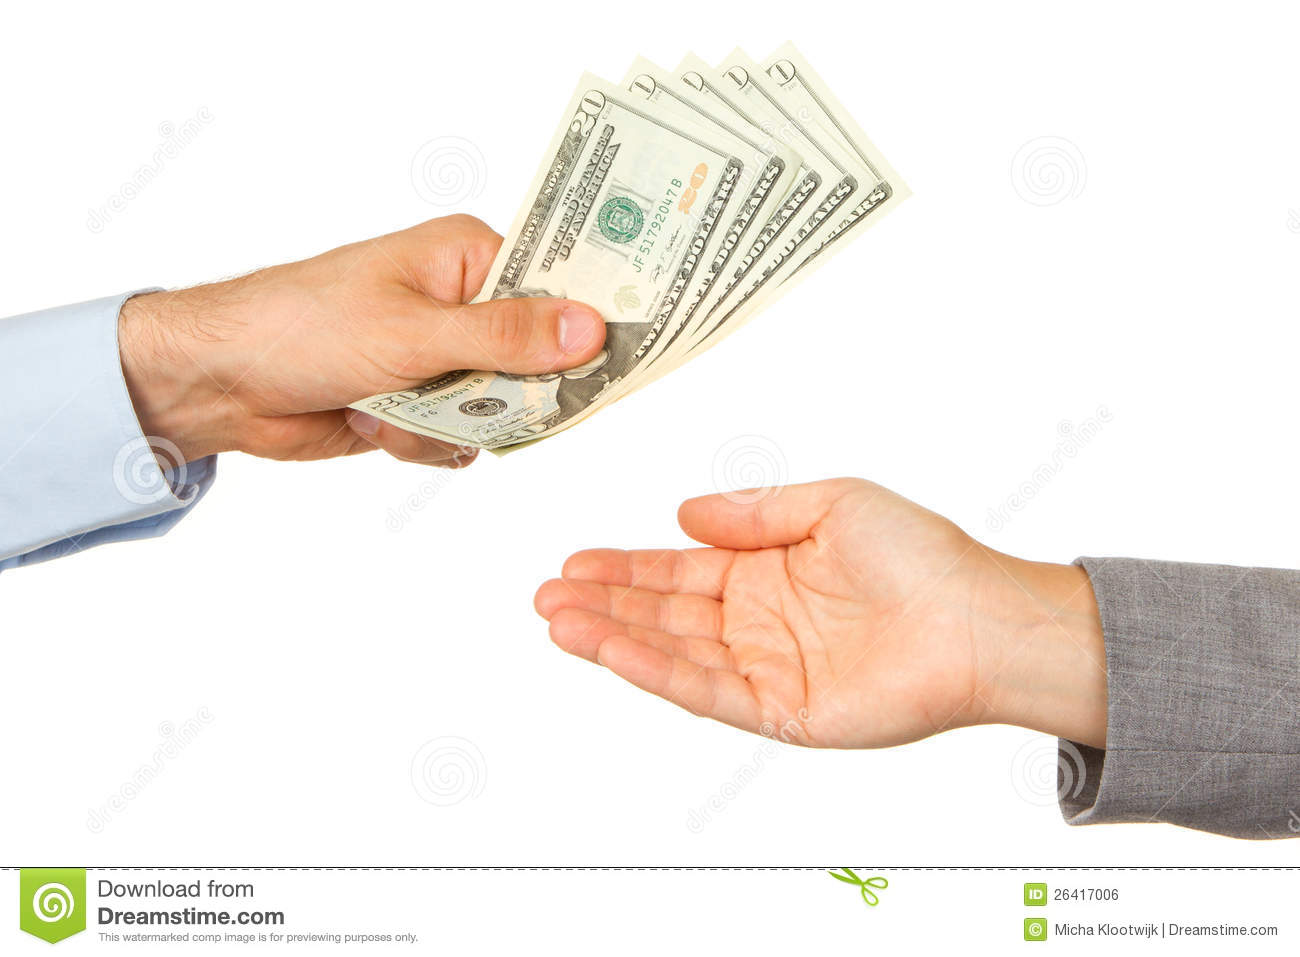 Transfer Of Money Between Man And Woman Royalty Free Stock. Mortgage Lenders St Louis Mo. Html Dashboard Template Plumber Lewisville Tx. College Of Southern Nevada Nursing. Software Bug Tracking Software. Fedex Shipping Labels Online. Alberta Automobile Insurance. Cd Replication Manufacturing. Best Rewards Credit Card Travel